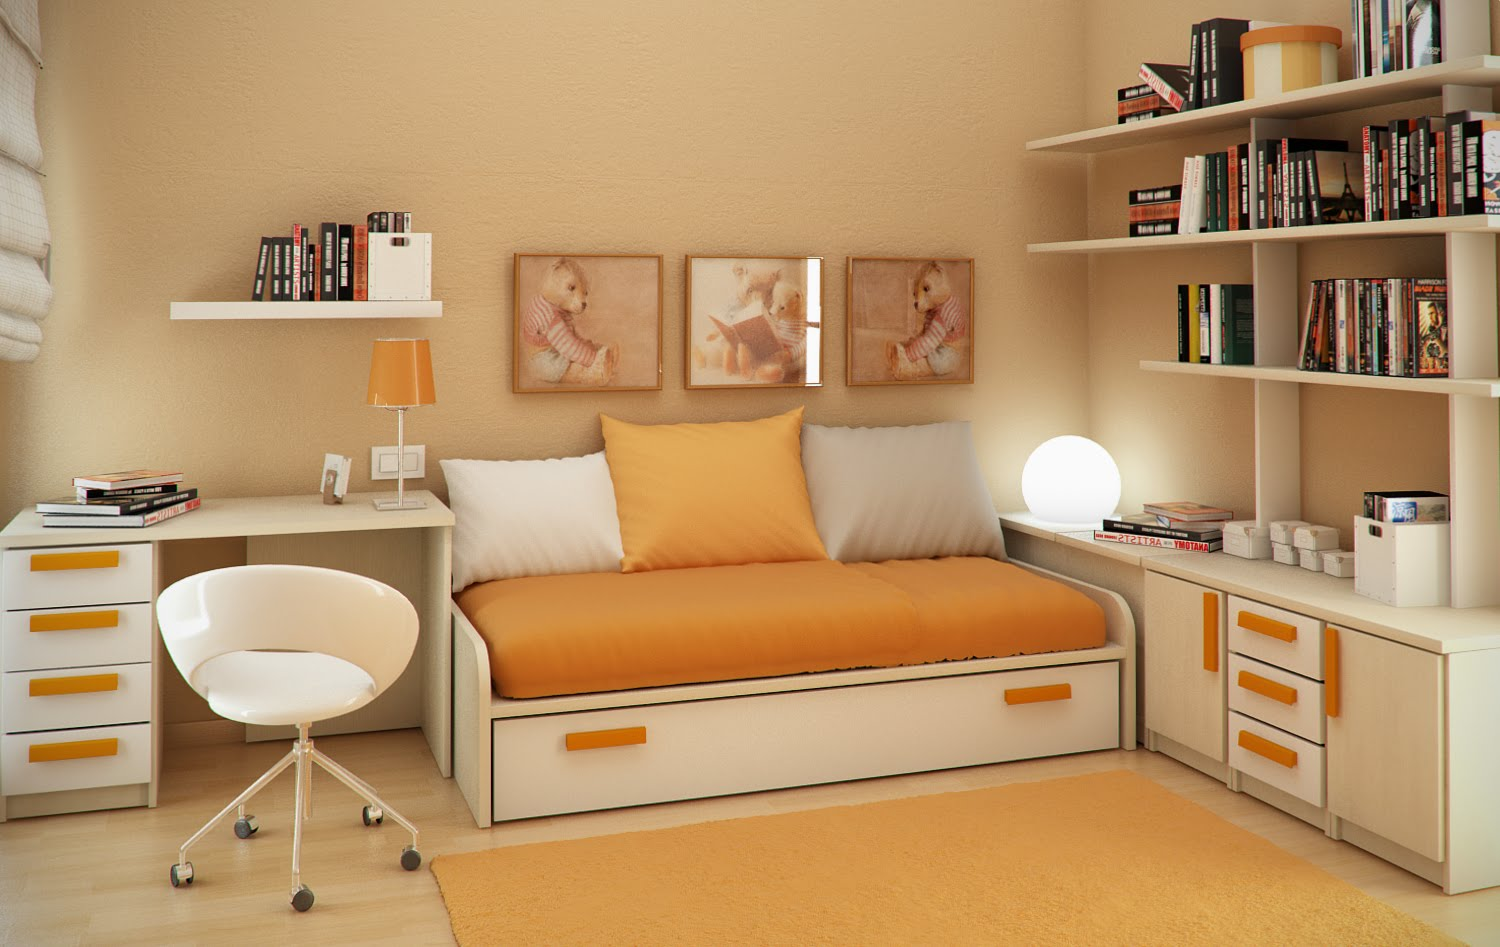 Good Ideas For Small Rooms small floorspace kids rooms